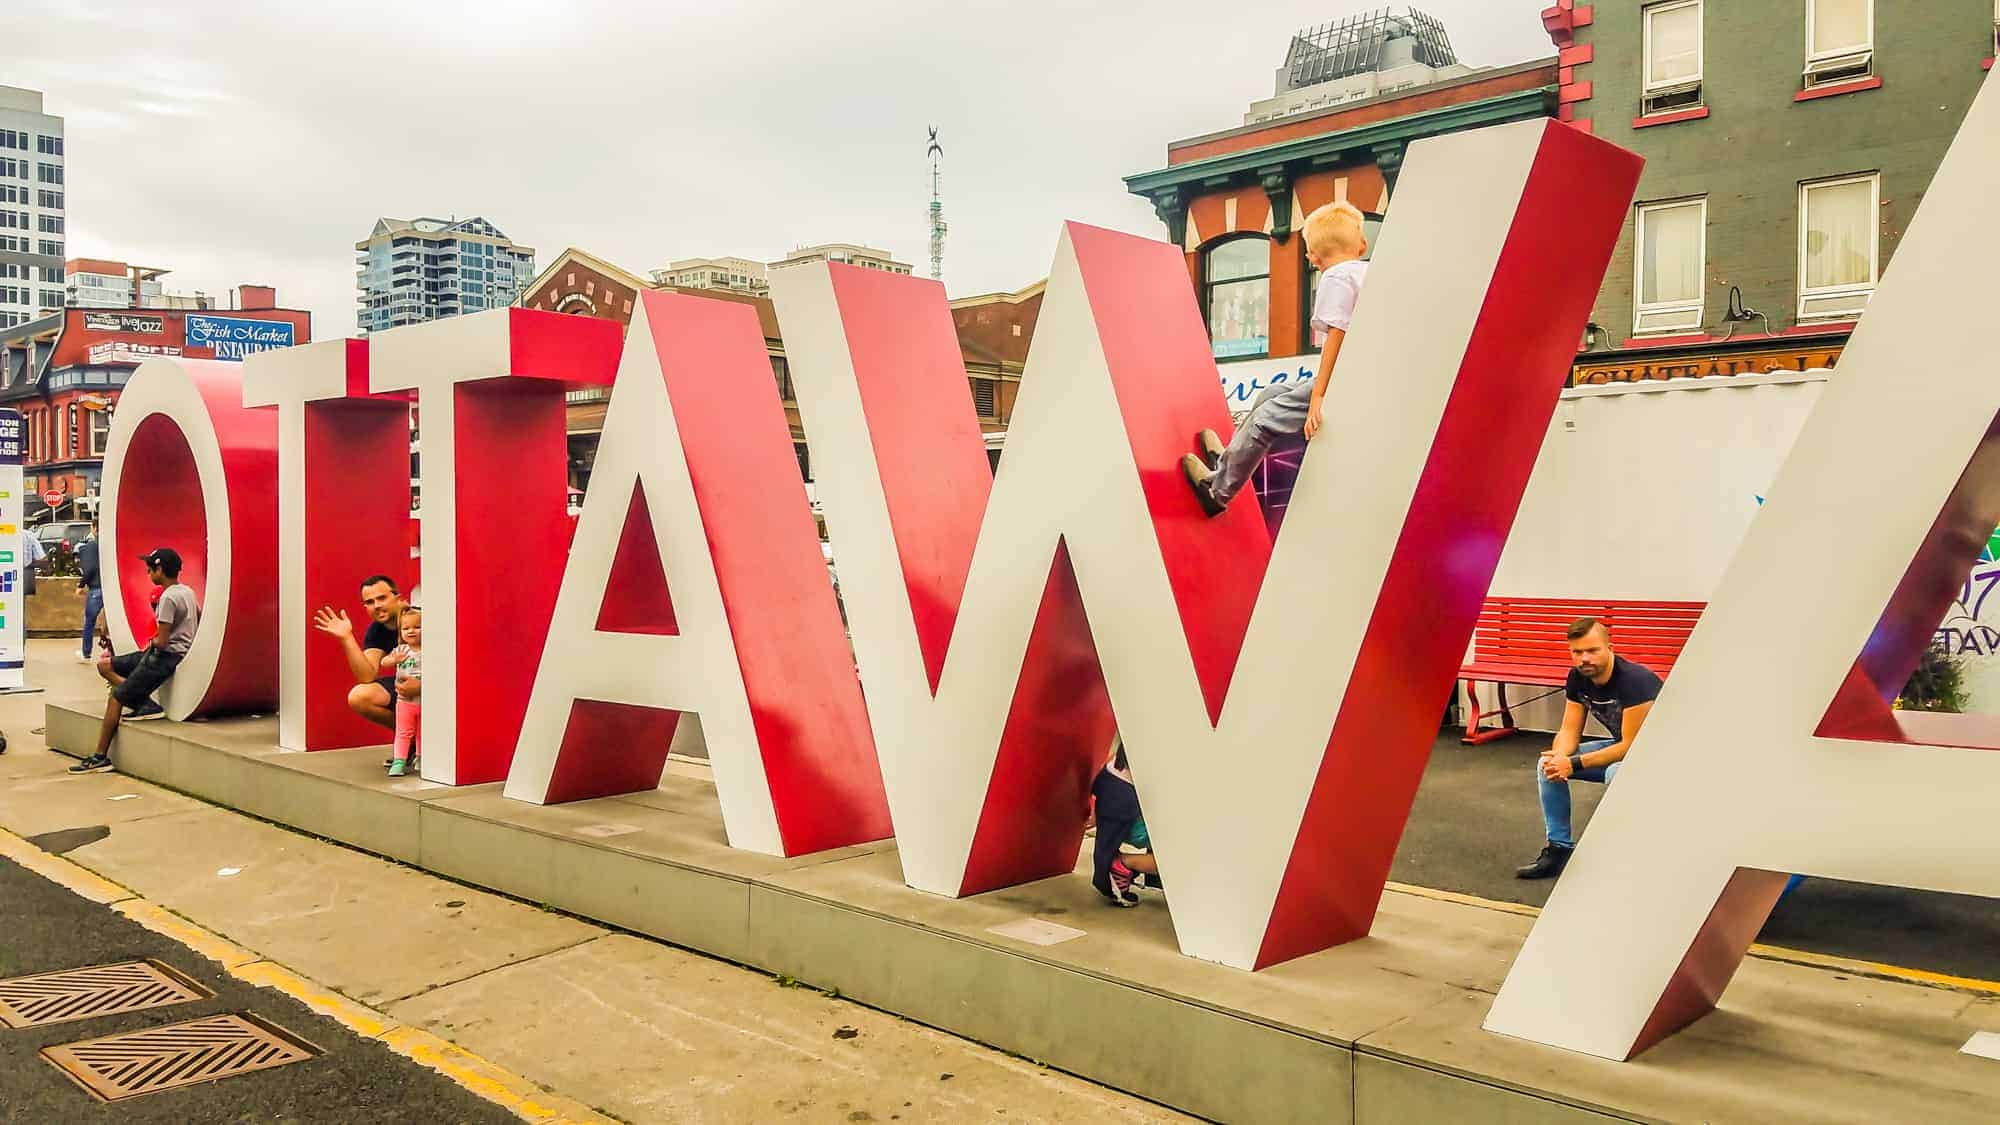 Things to do in Ottawa 5 - Top 10 Things to Do in Ottawa